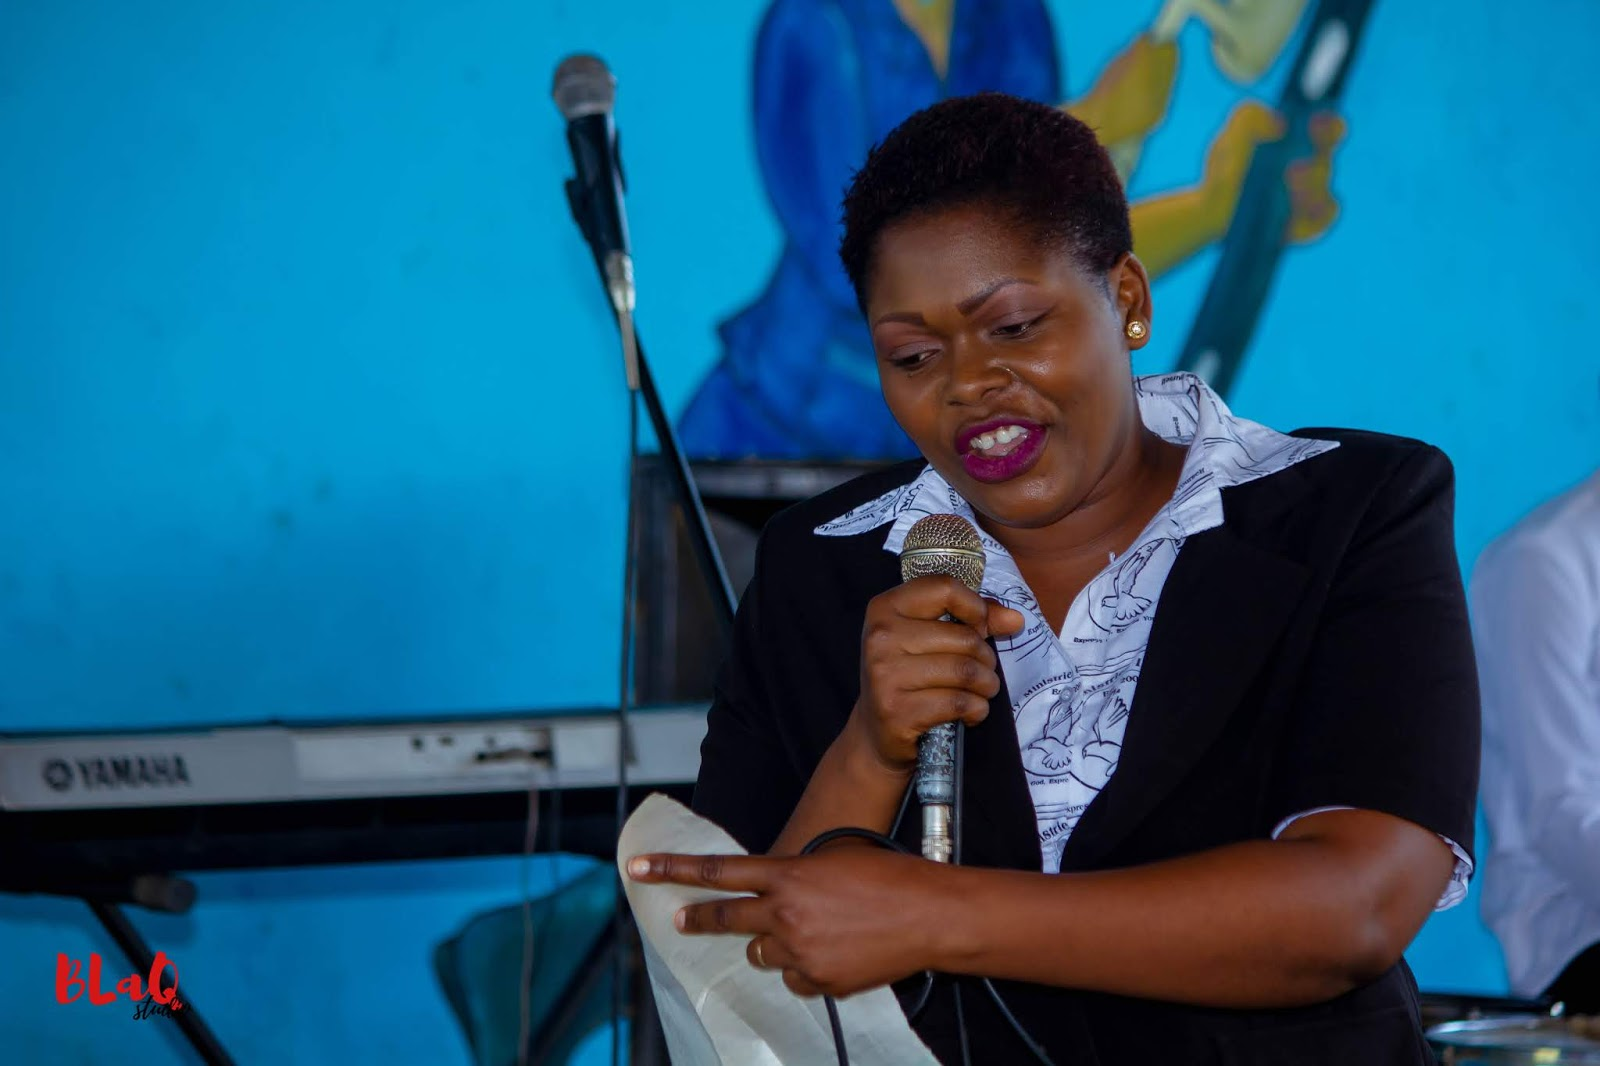 Glory Ministries Anniversary In Pictures (Chitungwiza Chapter) - 18 Years Of Ministries In 2019 (Part 1)